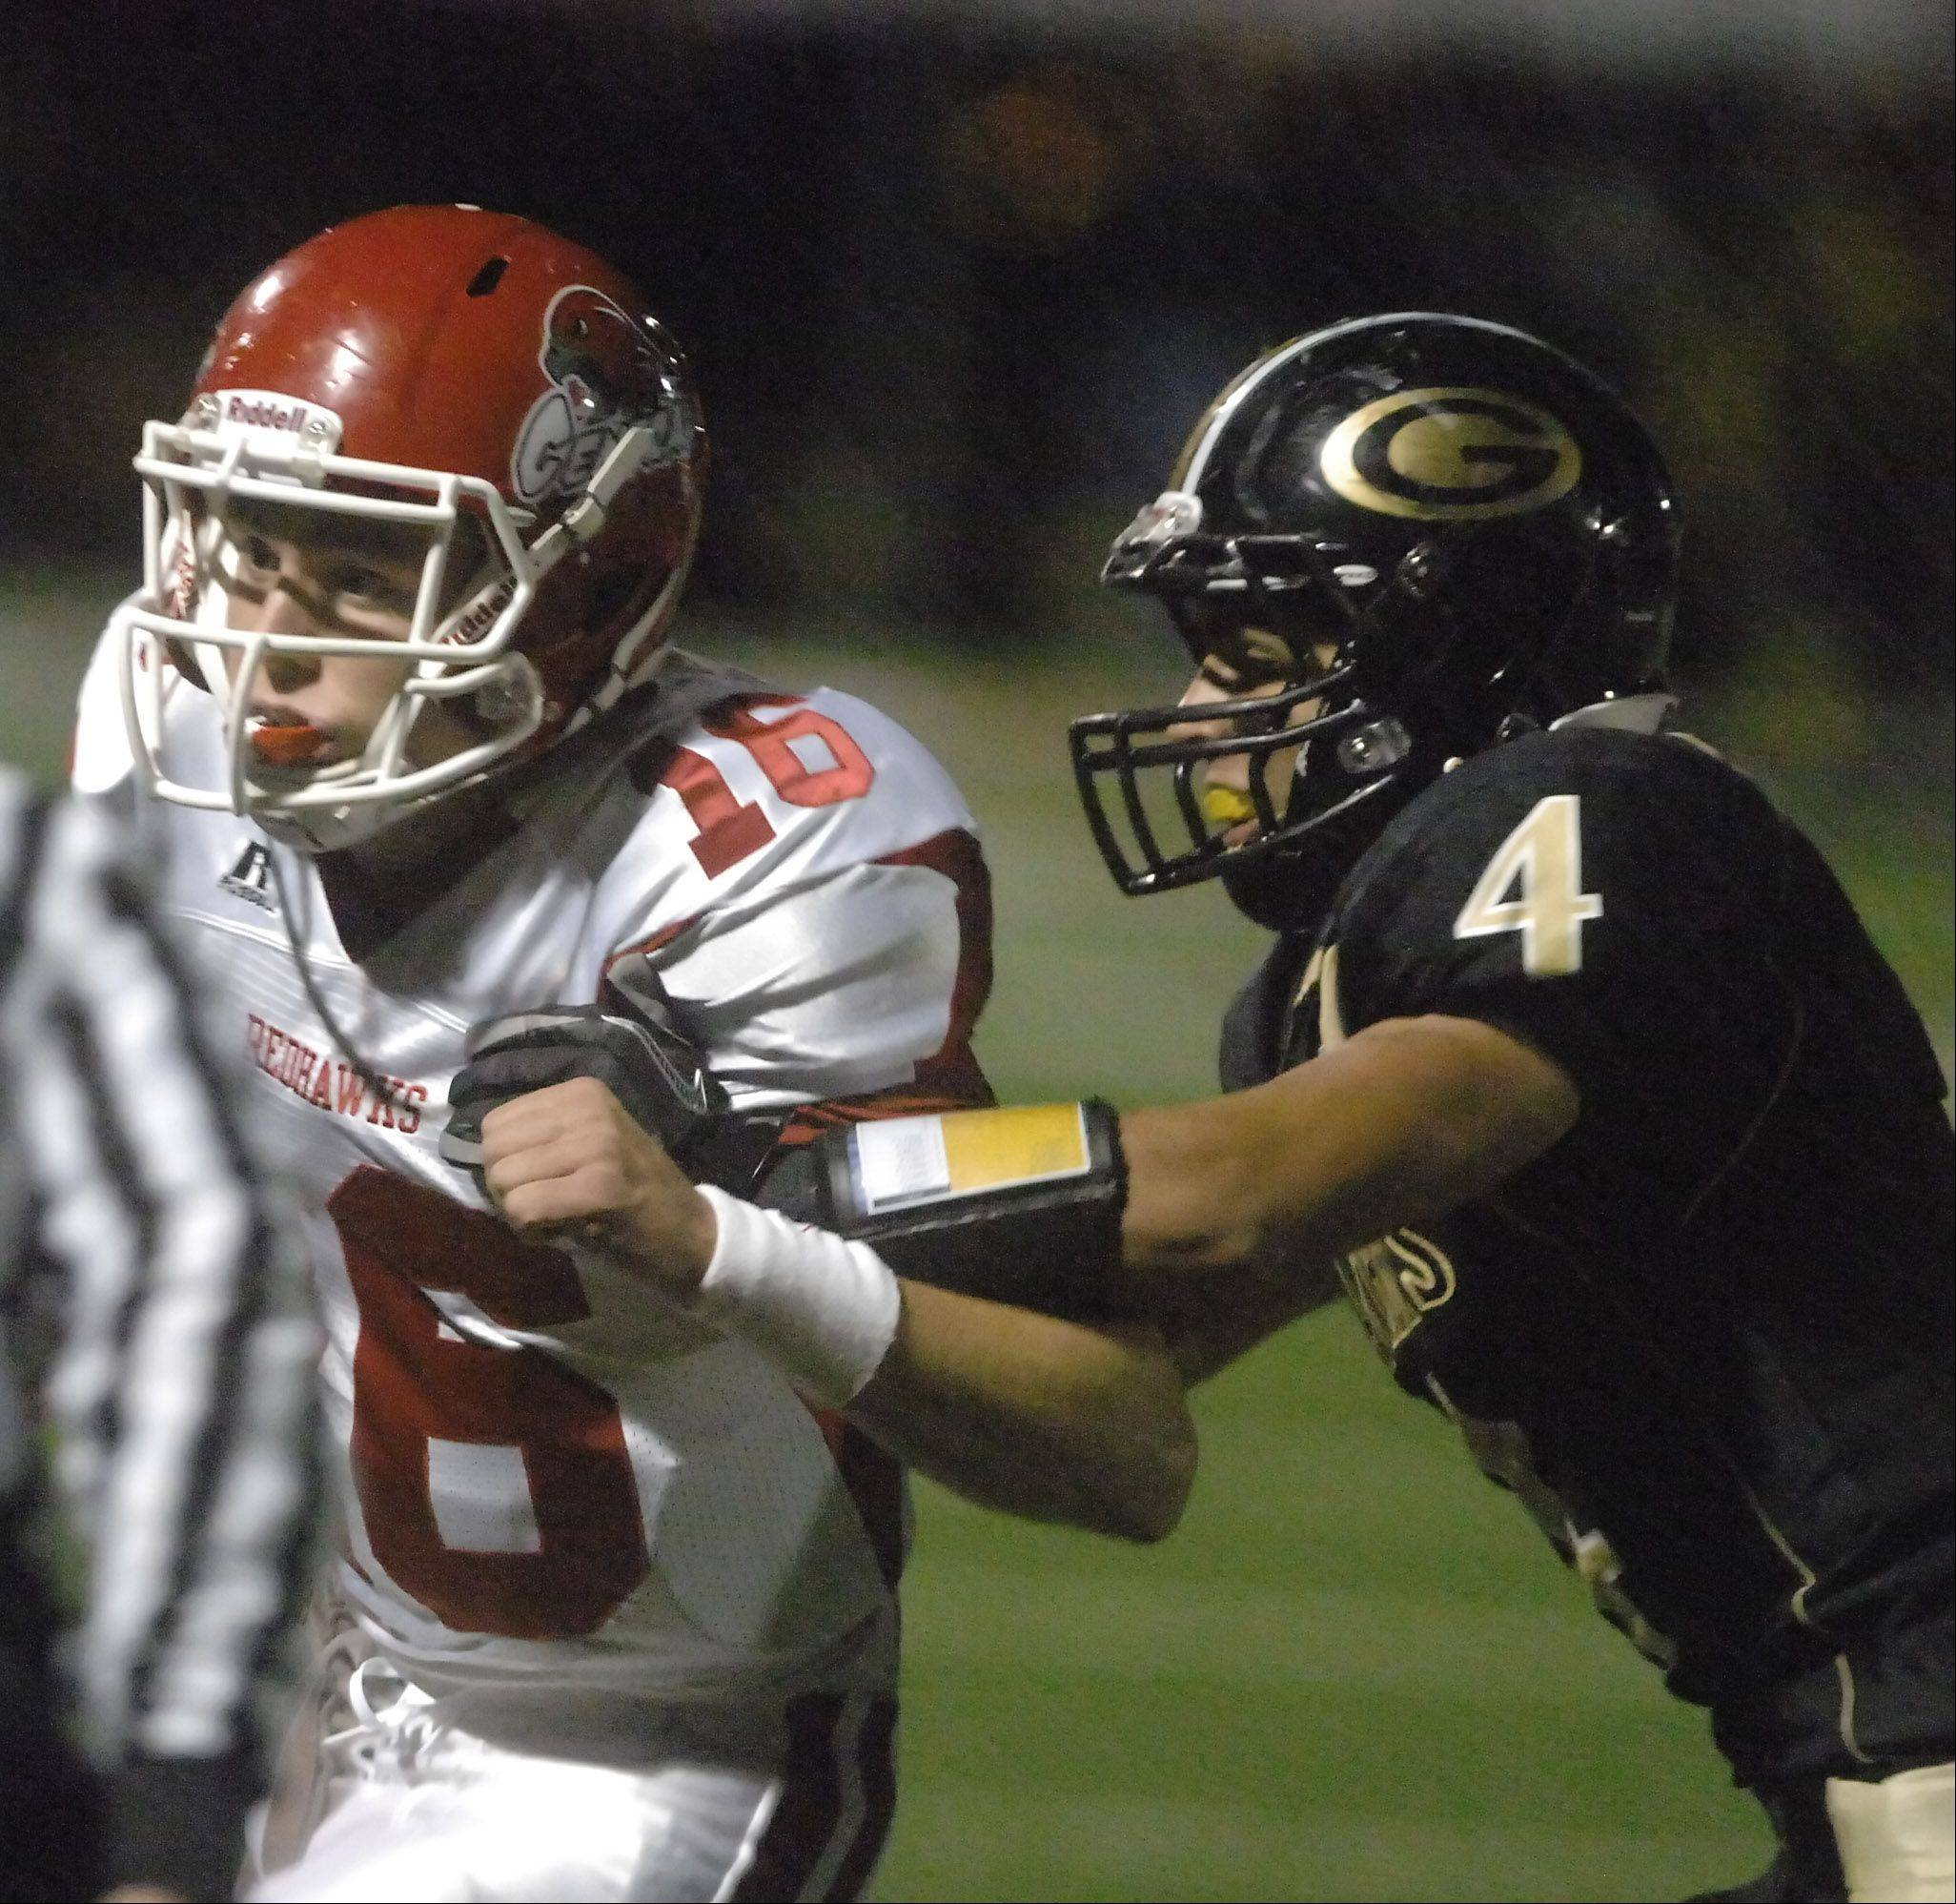 Jake Kolbe of Naperville Central is pulled down by Alex Smith of Glenbard North.